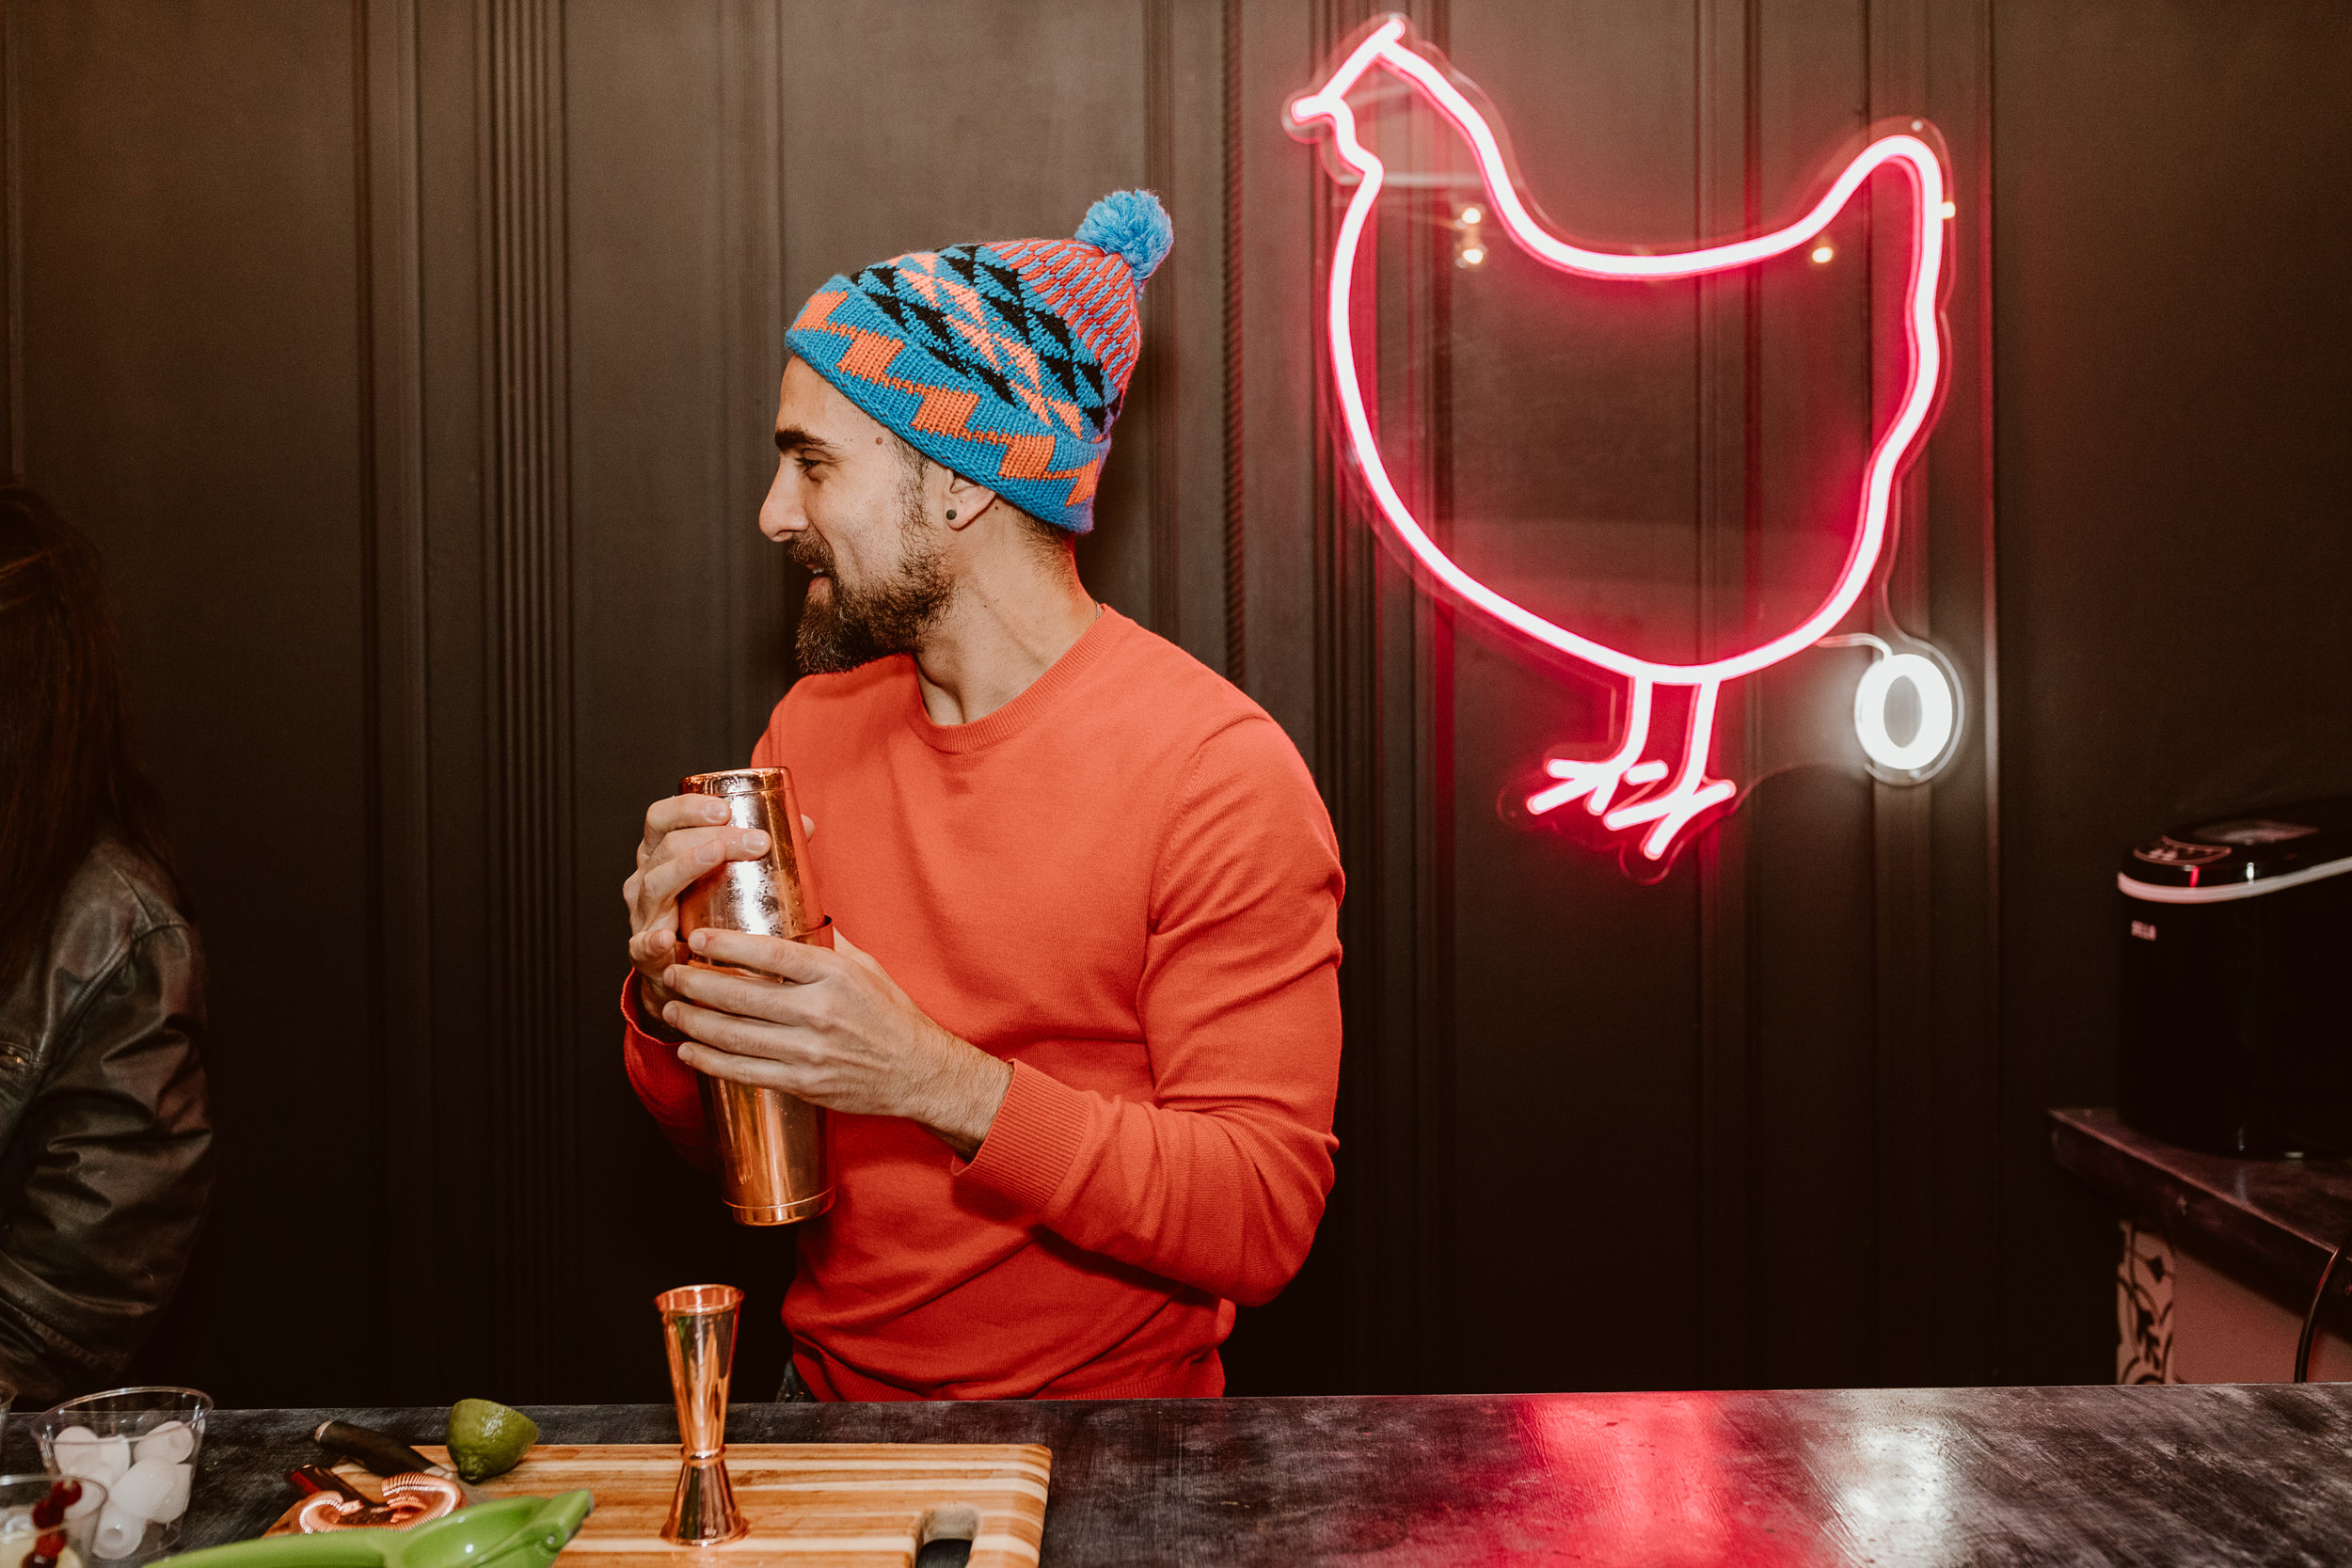 Holiday Tiki Party with Havana Club Rum | drinkingwithchickens.com